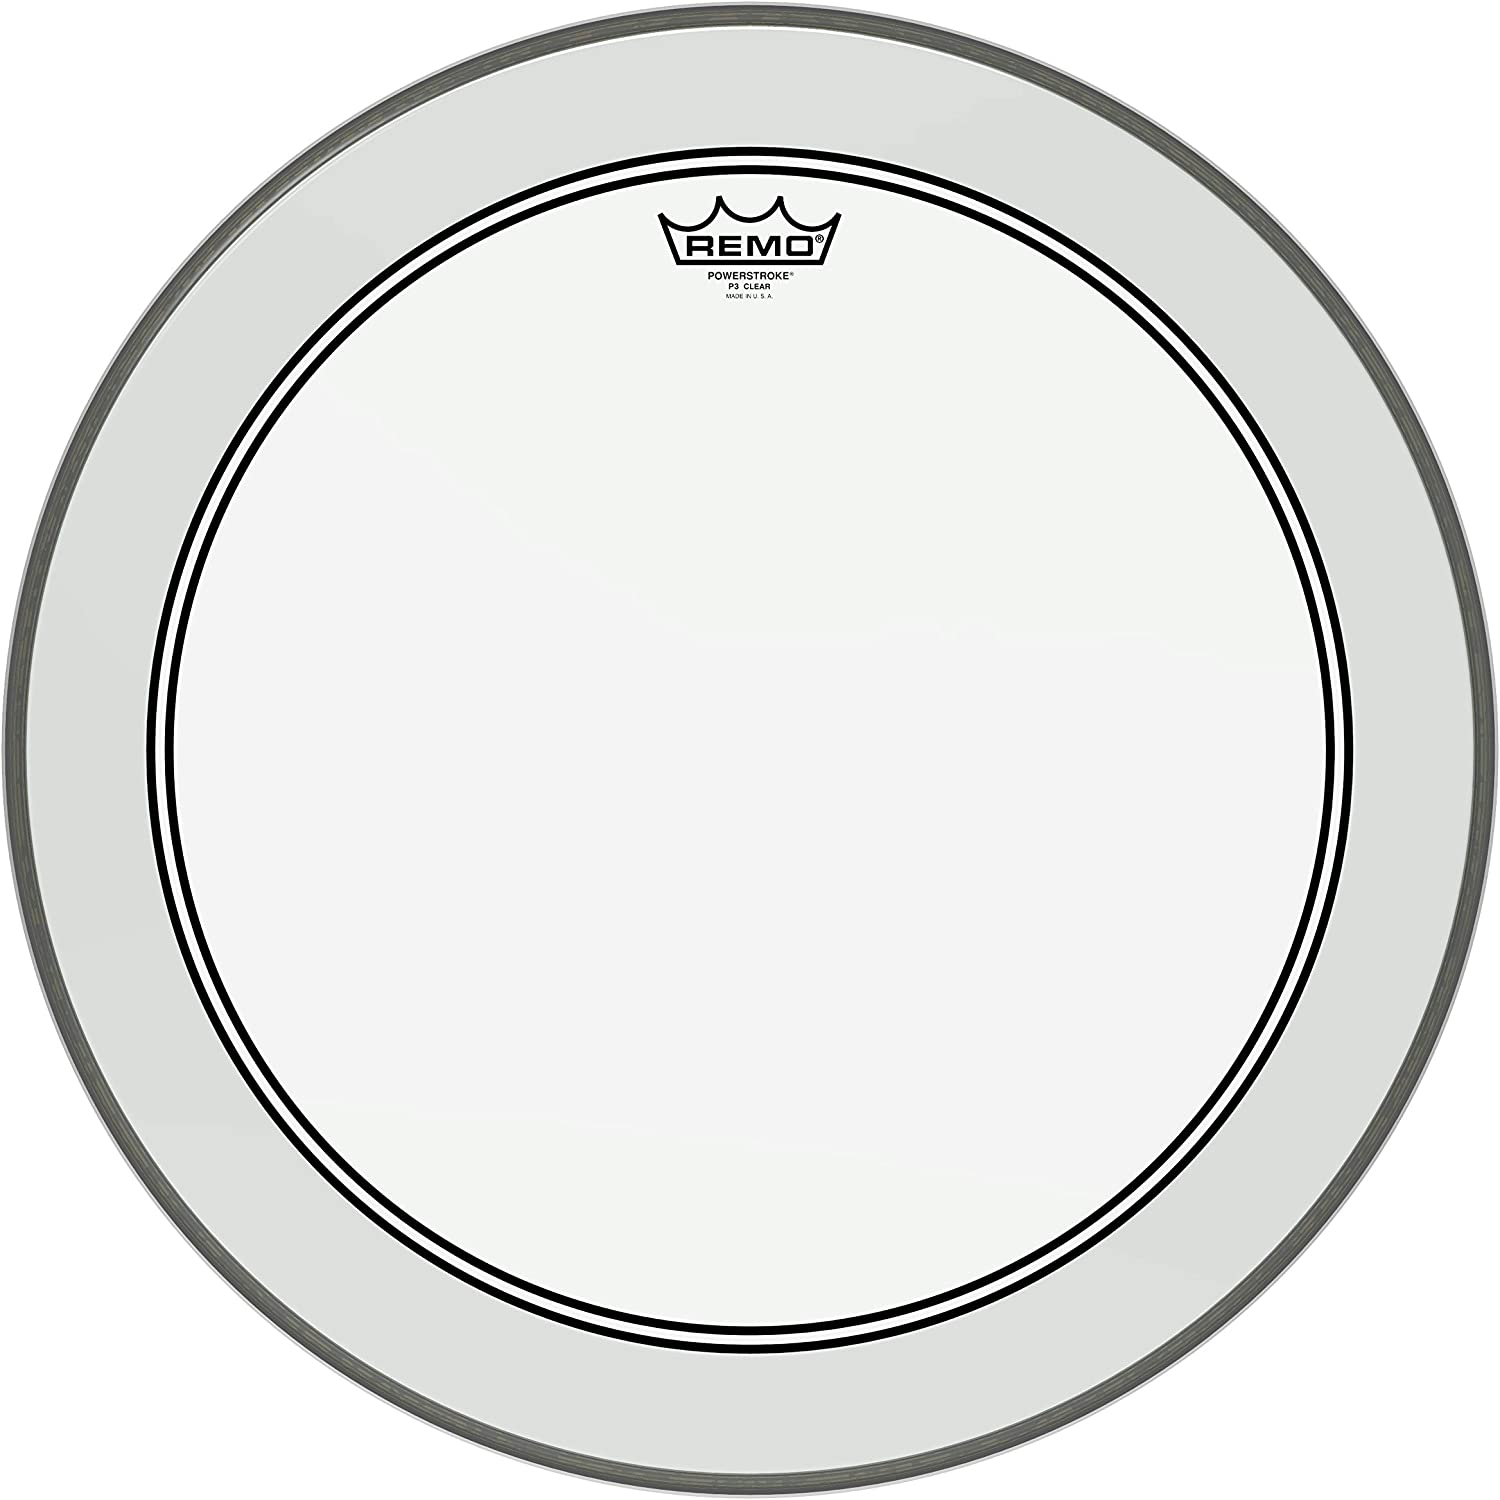 Remo Under blast sales Powerstroke P3 Clear Drumhead Manufacturer regenerated product Bass 22